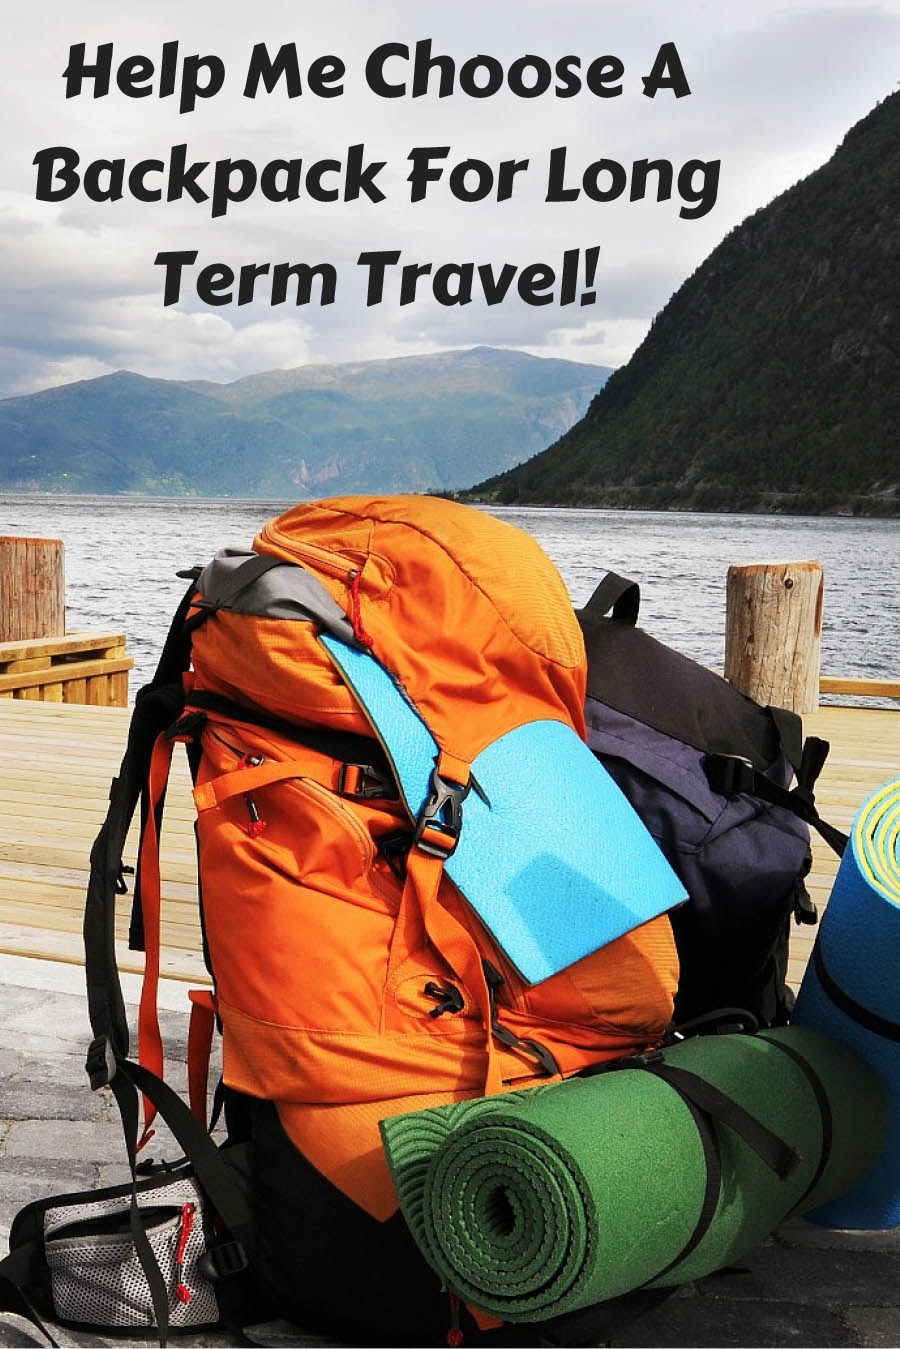 Help Me Choose a Backpack for Long Term Travel! | The Backslackers